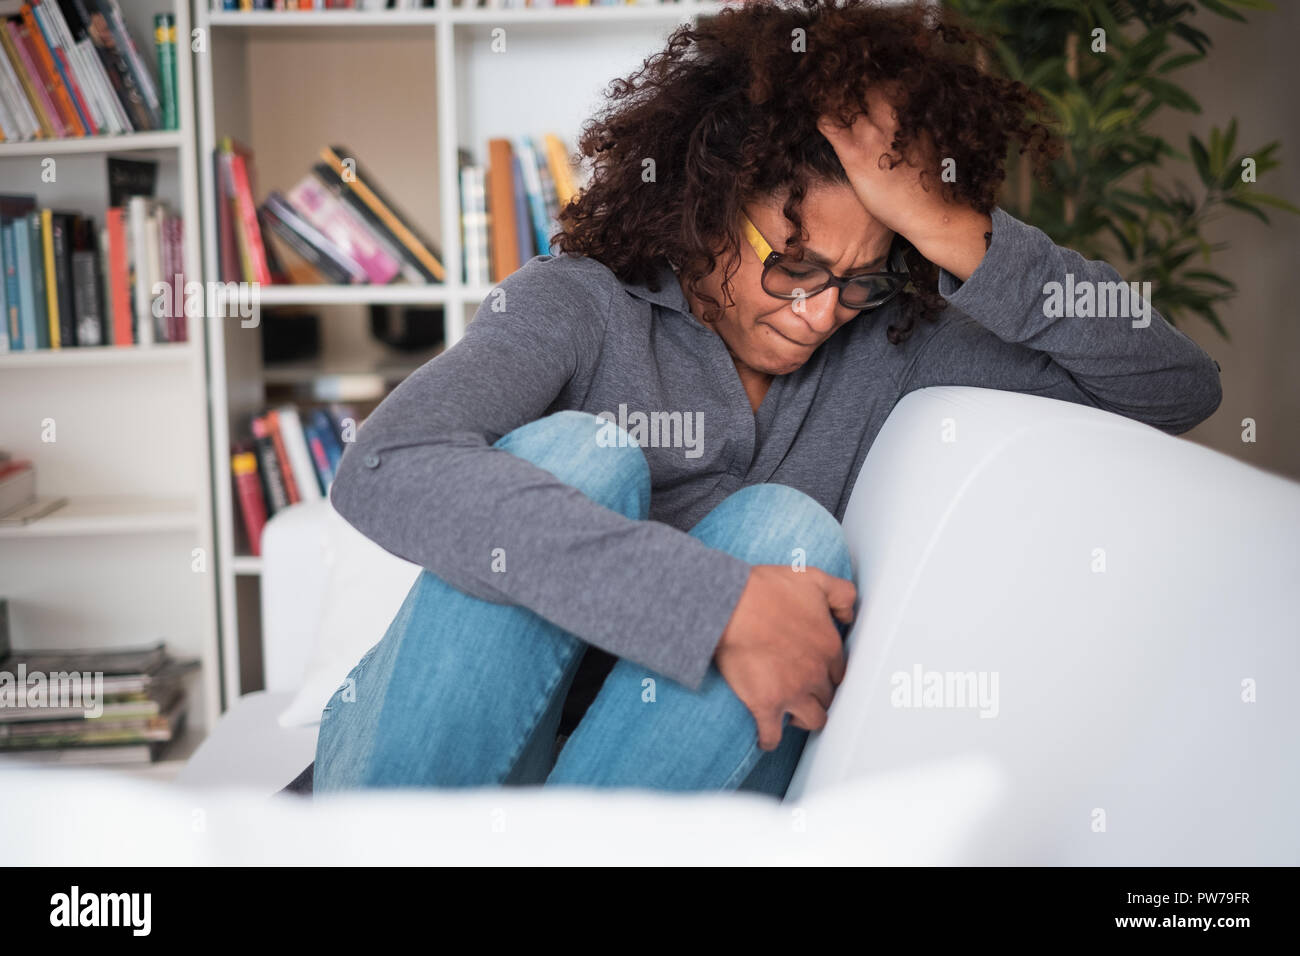 Black woman trying to get over relationship breakup - Stock Image